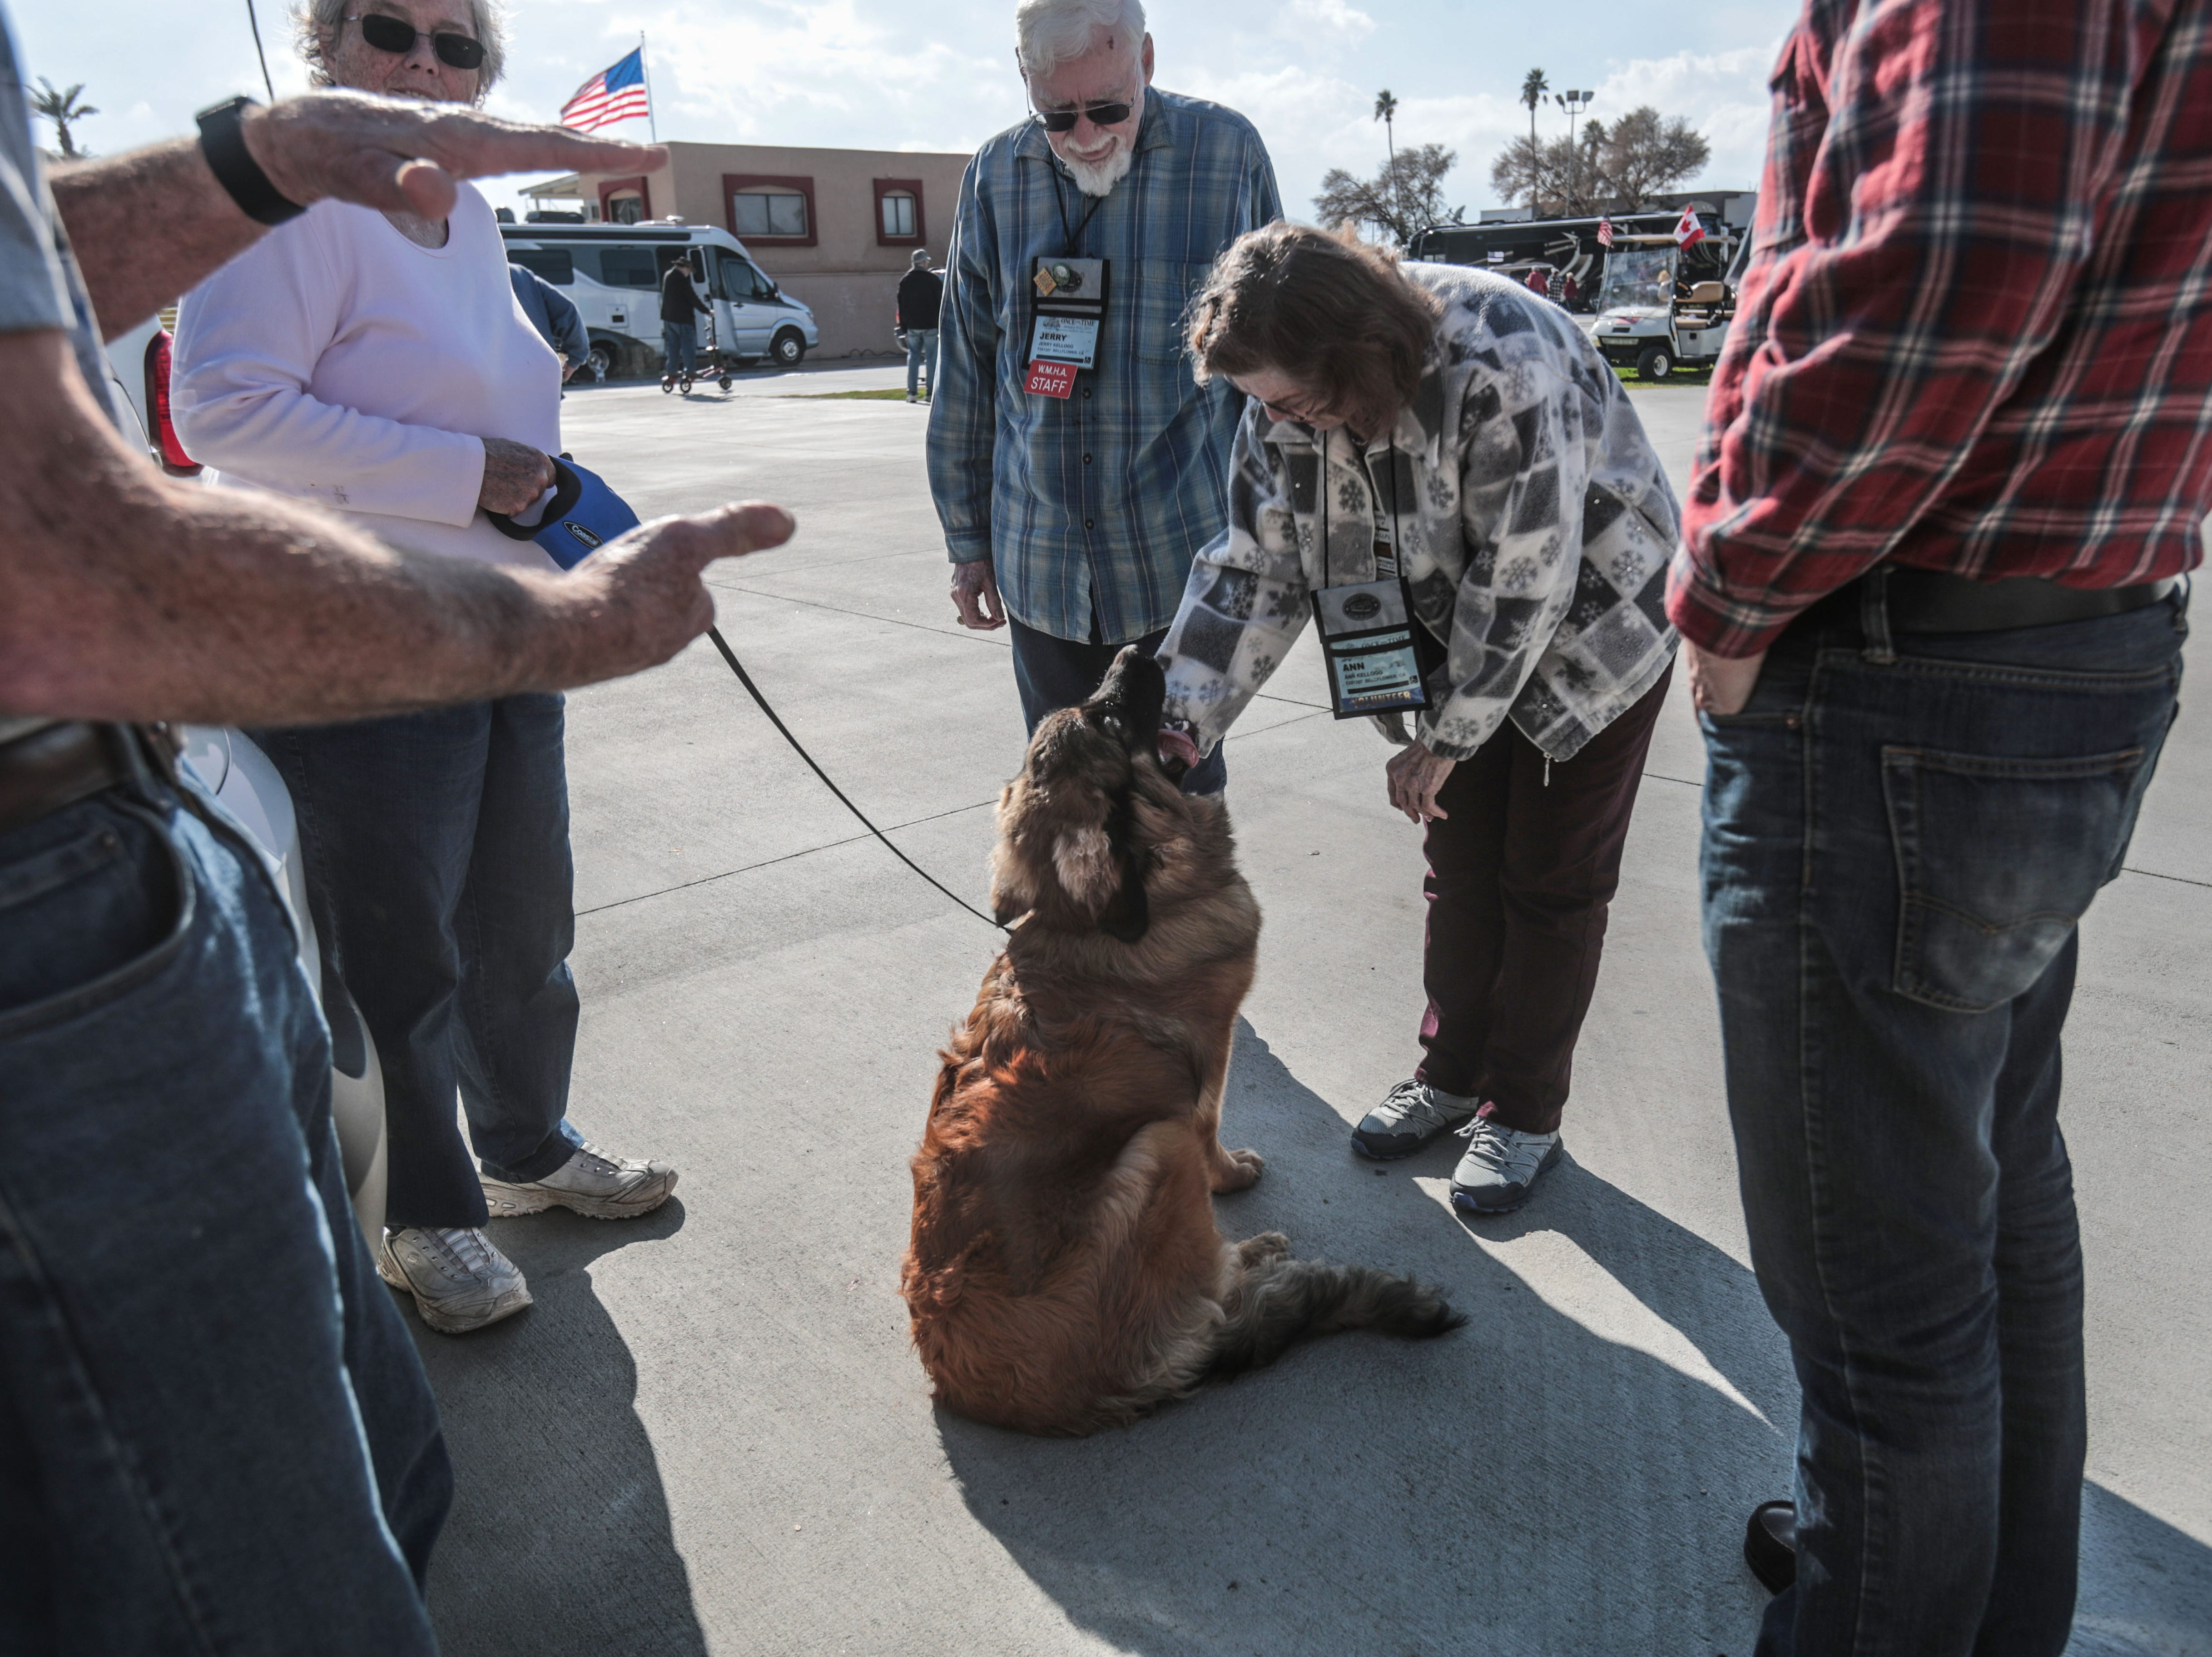 RV owners and their pet at the Riverside County Fairground in Indio on Saturday, January 12, 2019, during the FMCA annual motorhome convention.